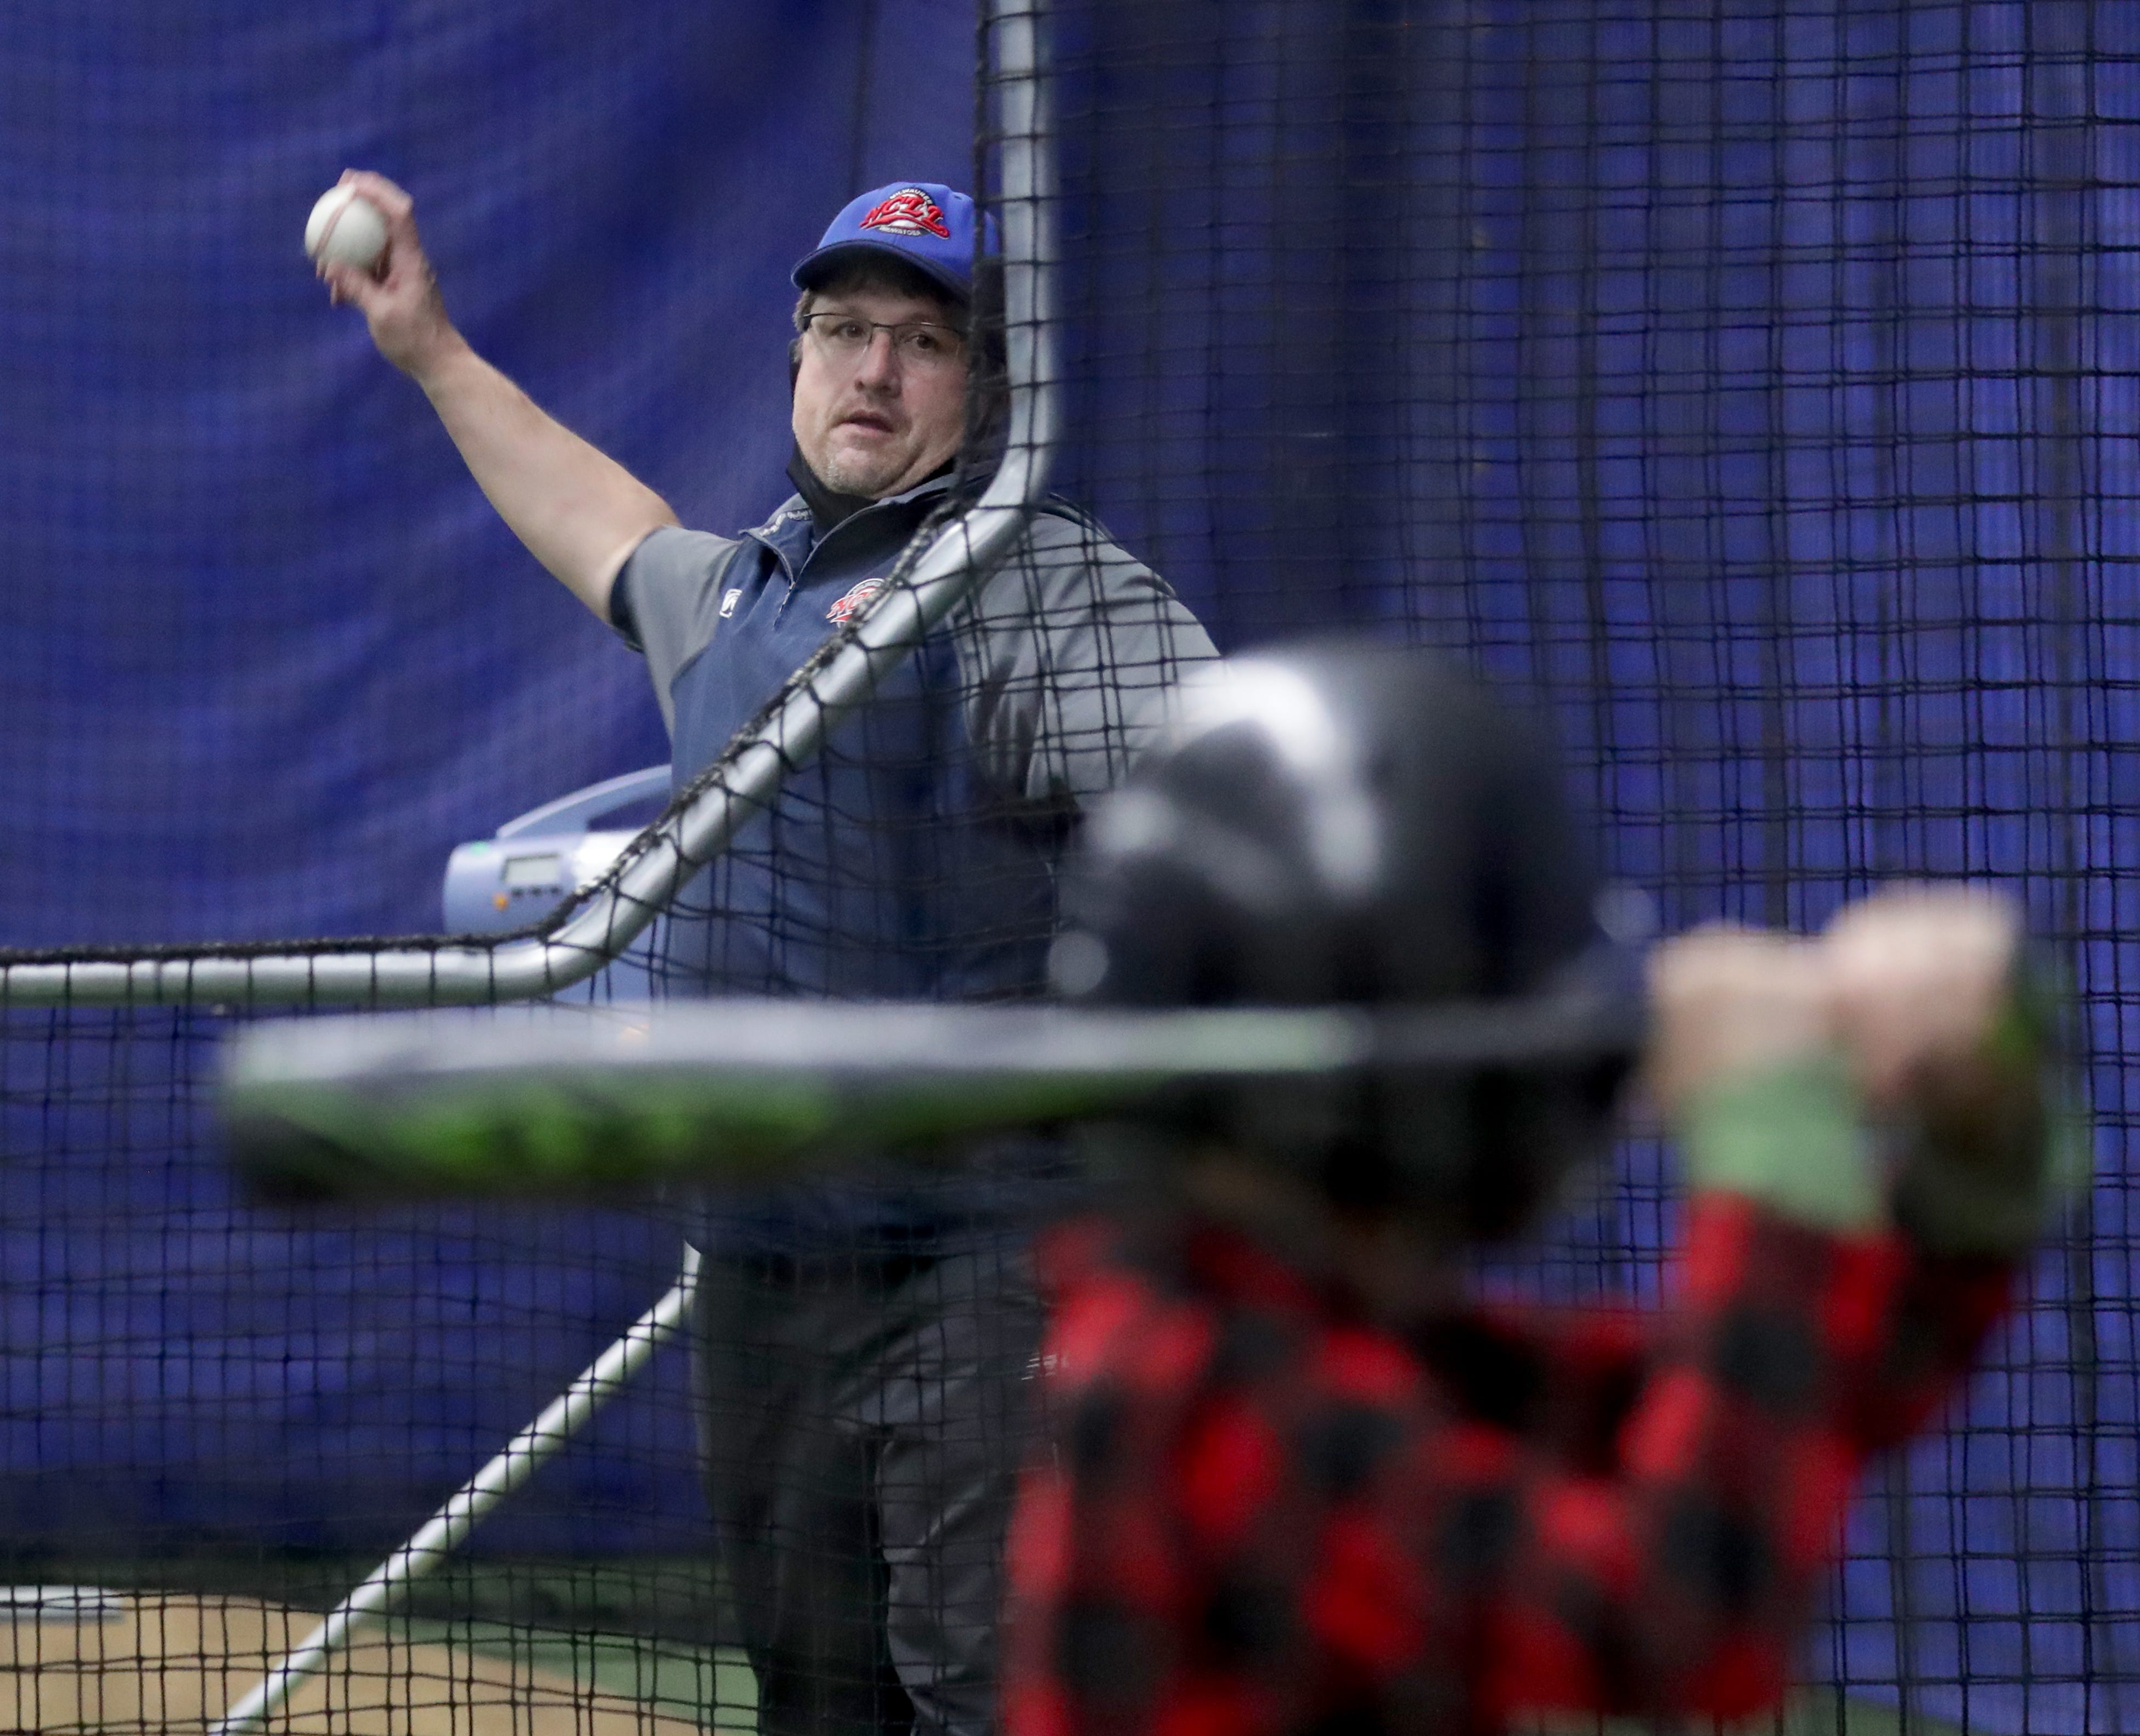 Tony Costa, president of North Central Little League, throws a pitch during player evaluations at the North Central Little League facility April 10, 2021.